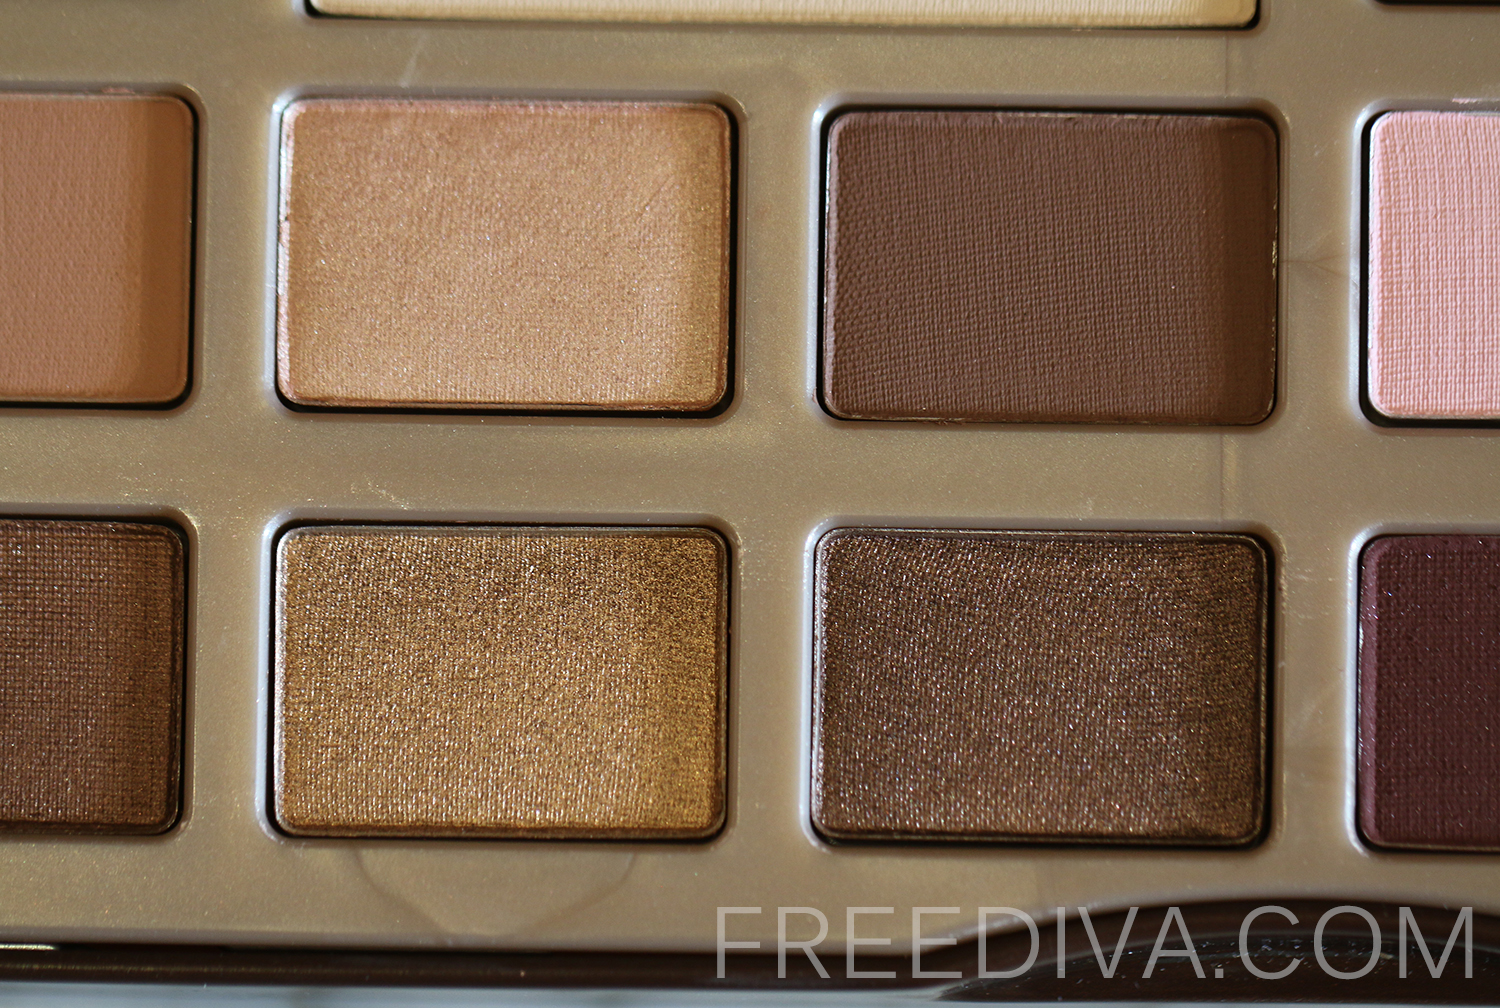 chocolate bar eyeshadow palette too faced free diva. Black Bedroom Furniture Sets. Home Design Ideas